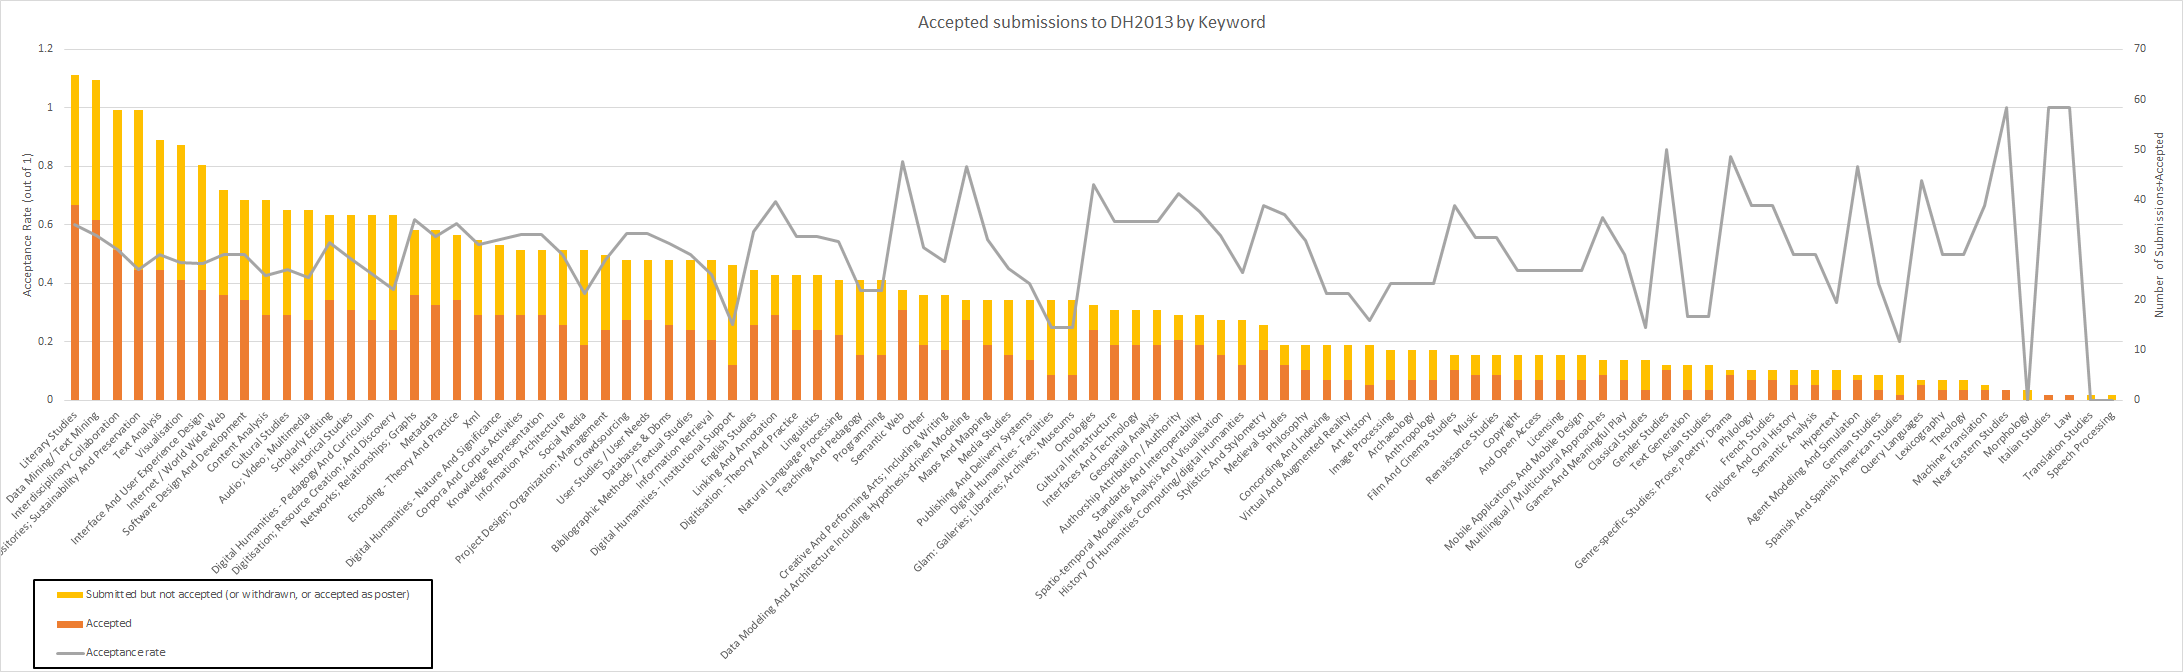 Acceptance rates of DH2013 by Keywords attached to submissions, sorted by number of submissions.